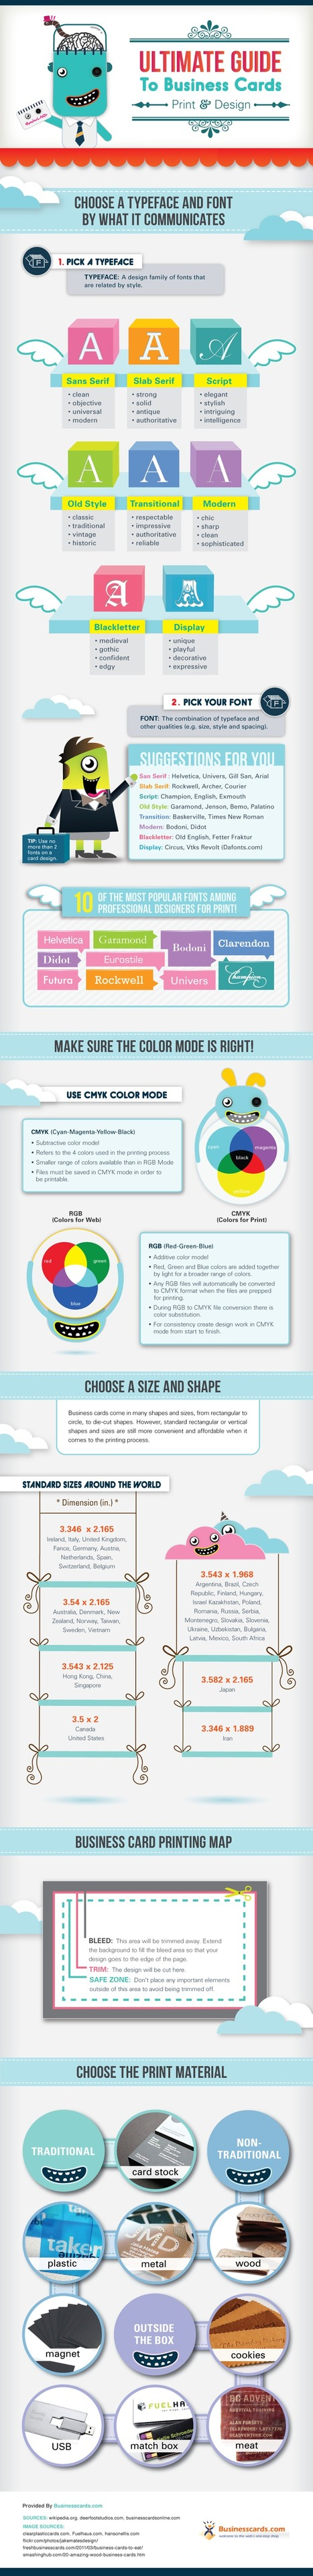 Cool Infographics - Blog - Ultimate Guide to Business Cards | color for branding | Scoop.it